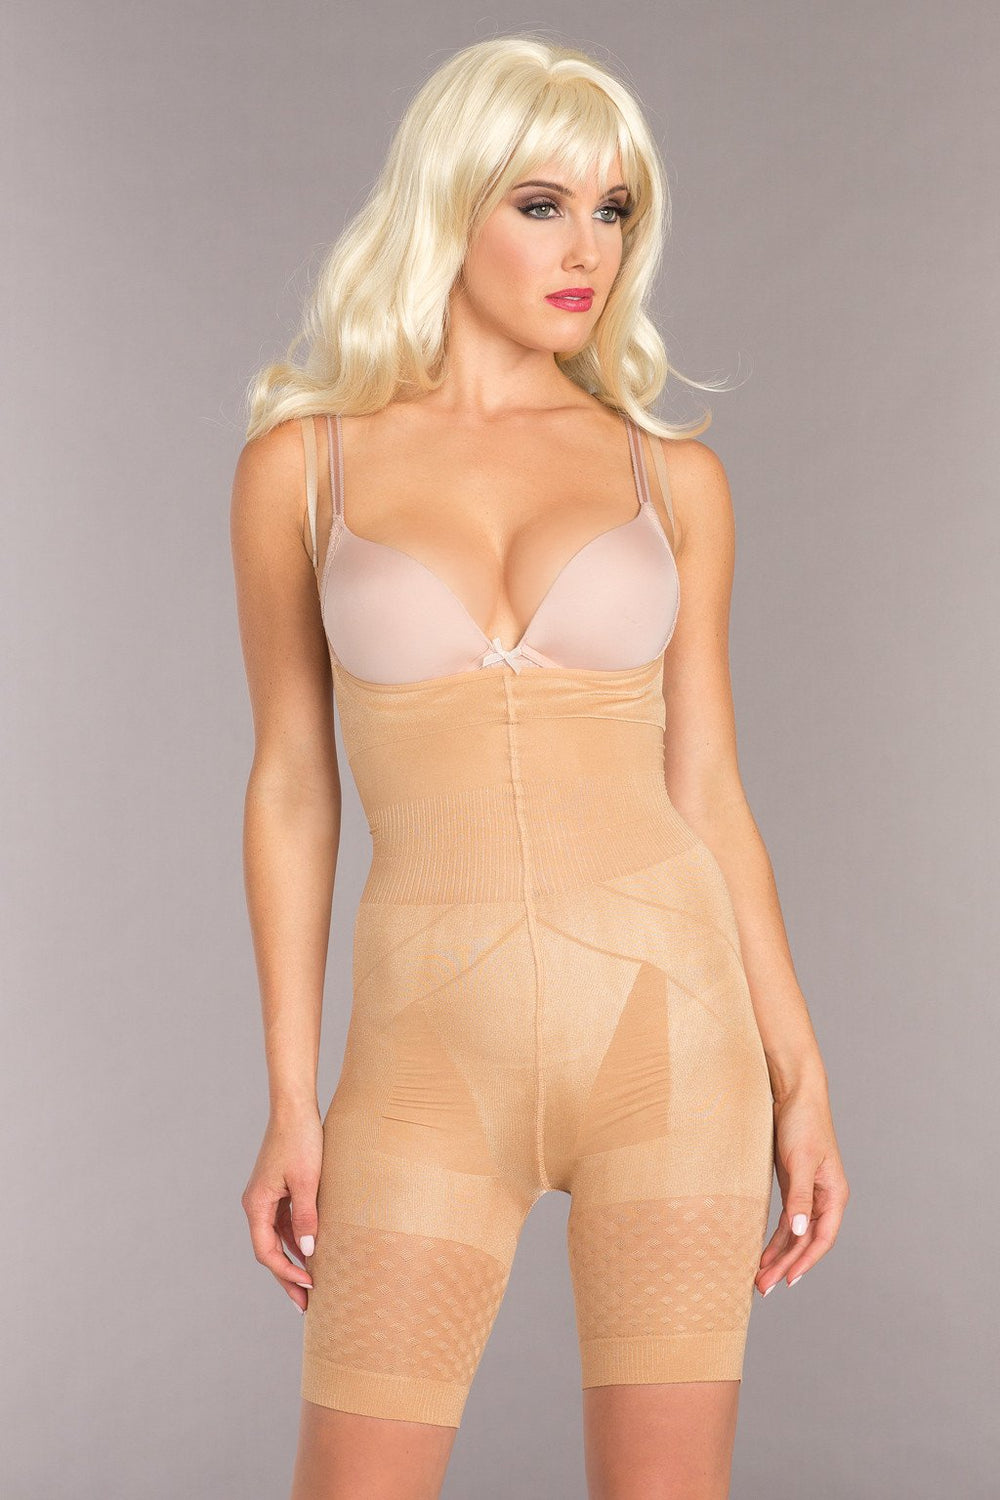 BW1675ND Thinking Thing Body Shaper - Nude